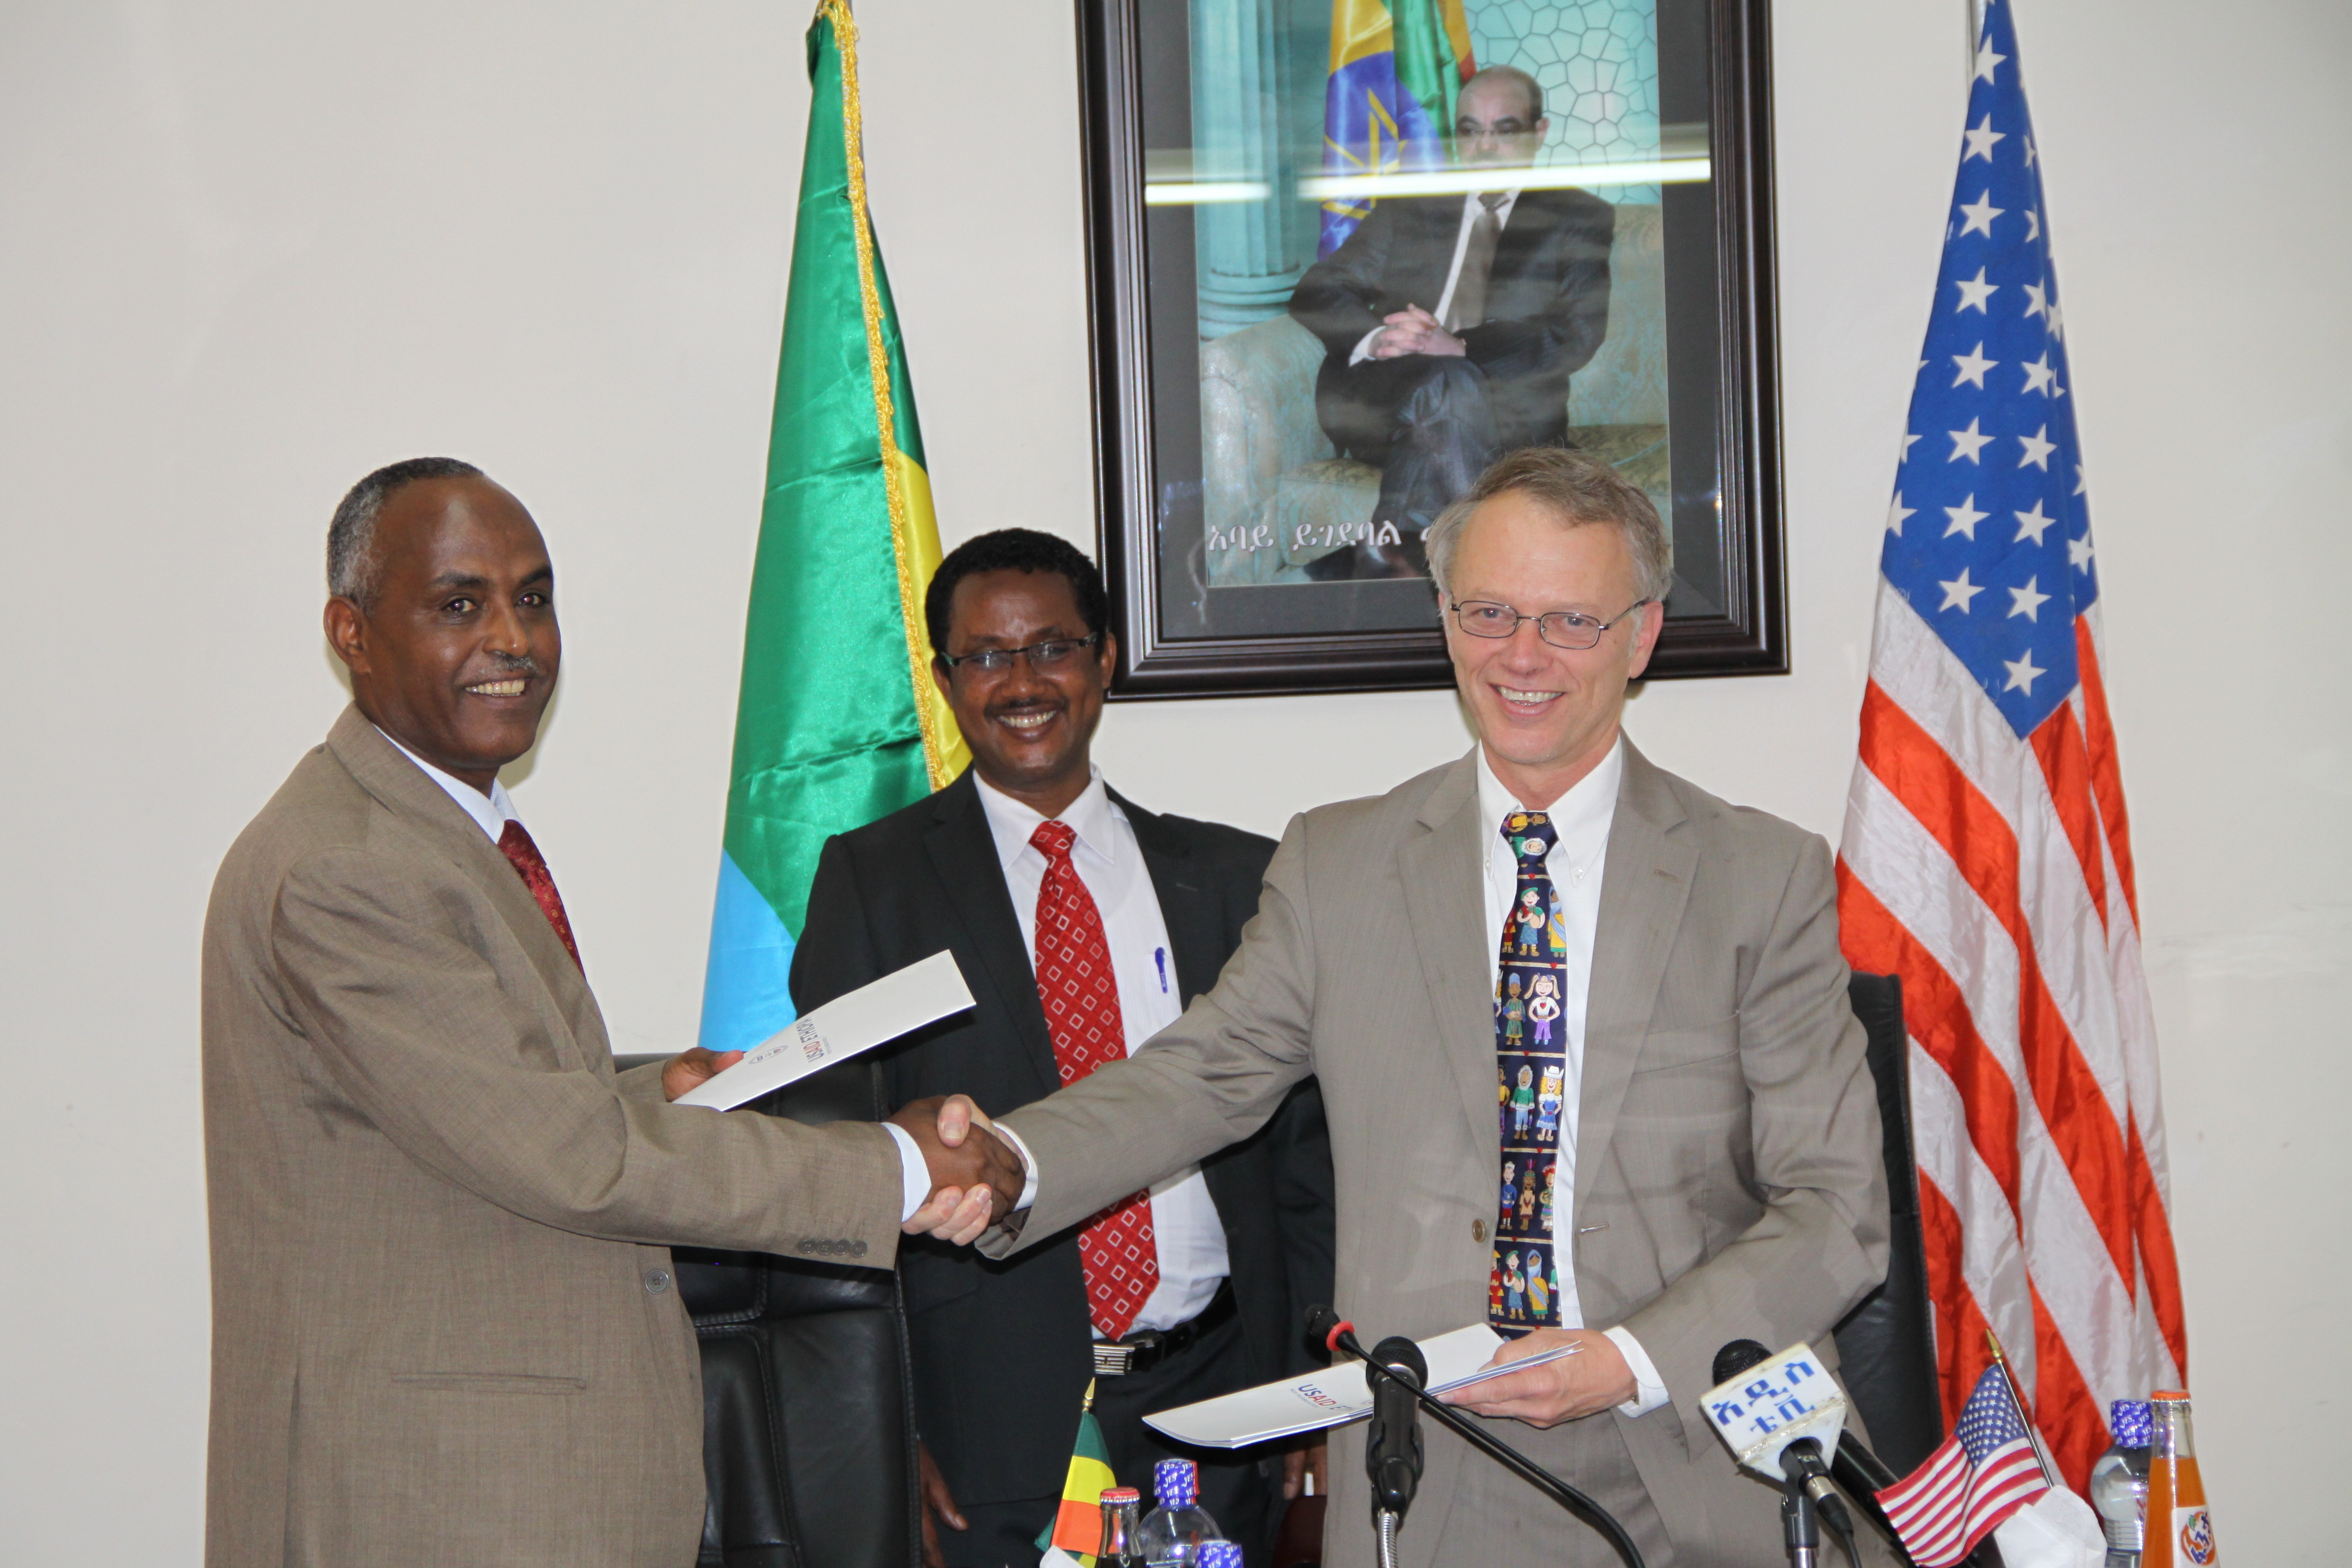 Addis Ababa Deputy Mayor Abate Sitotaw (left) and USAID Mission Director Dennis Weller shake hands after signing a new agreement